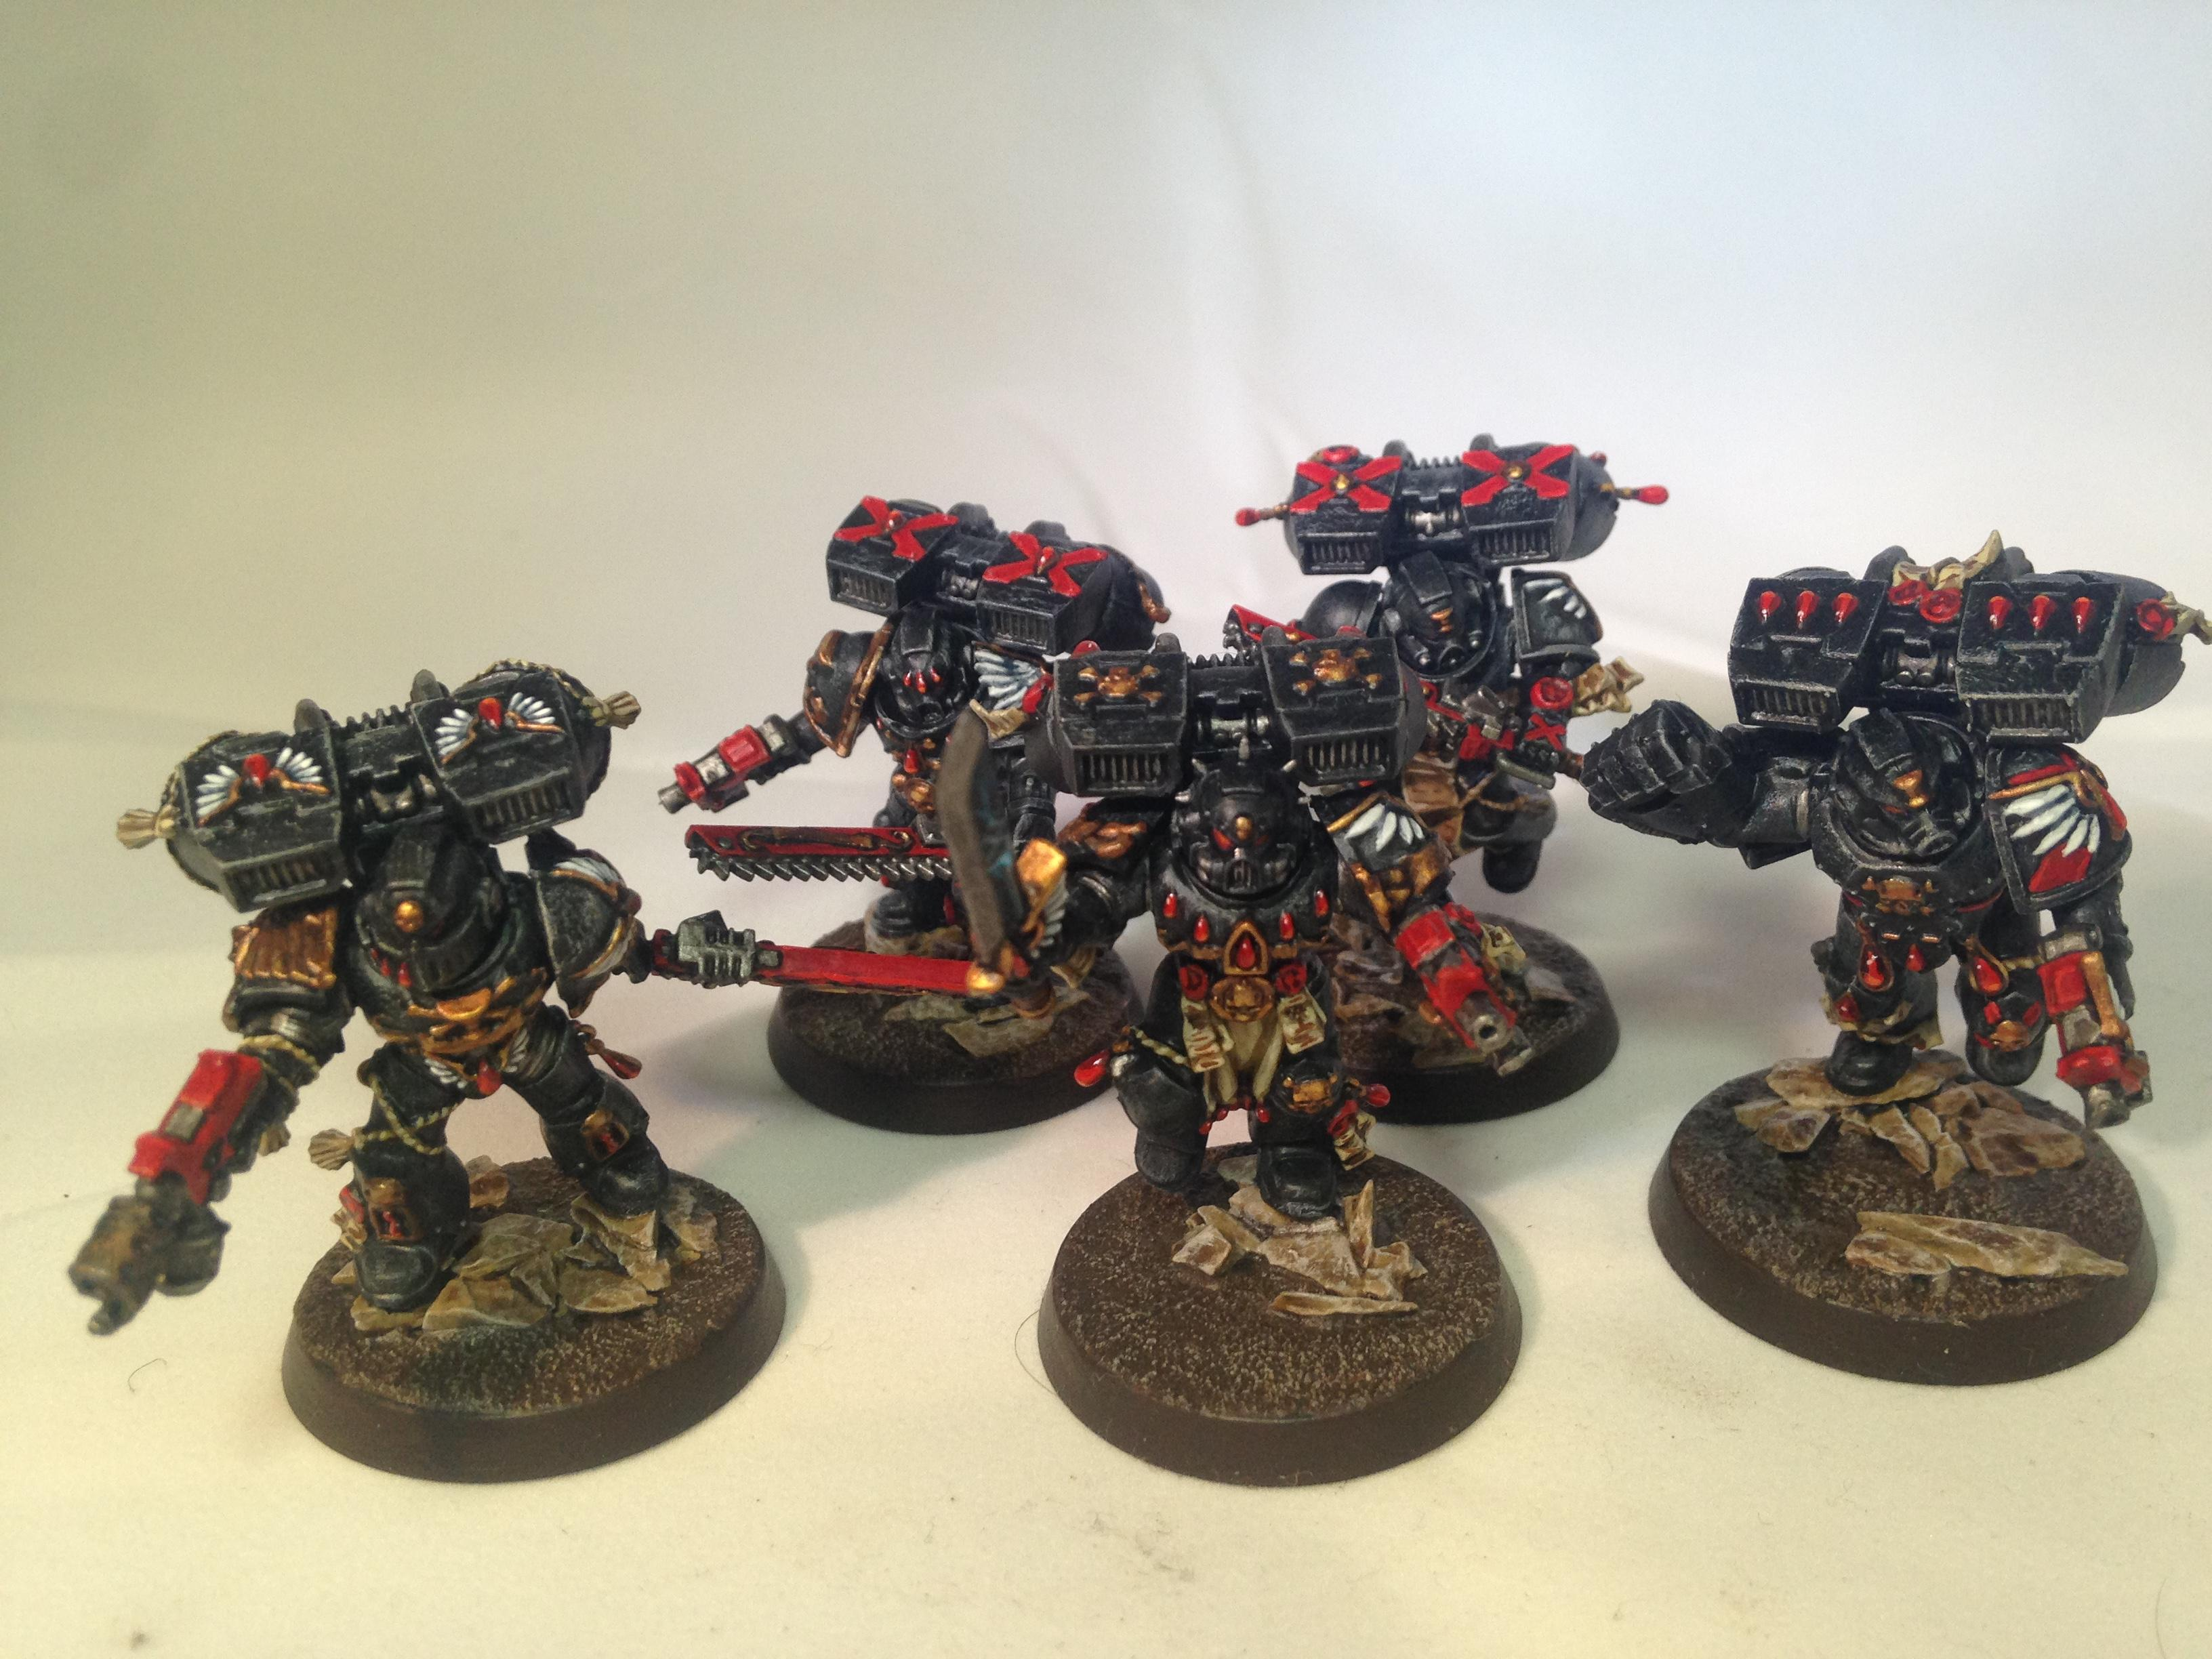 Blood Angels, Death Company, Hand Flamer, Jump Pack, Power Fist, Power Sword